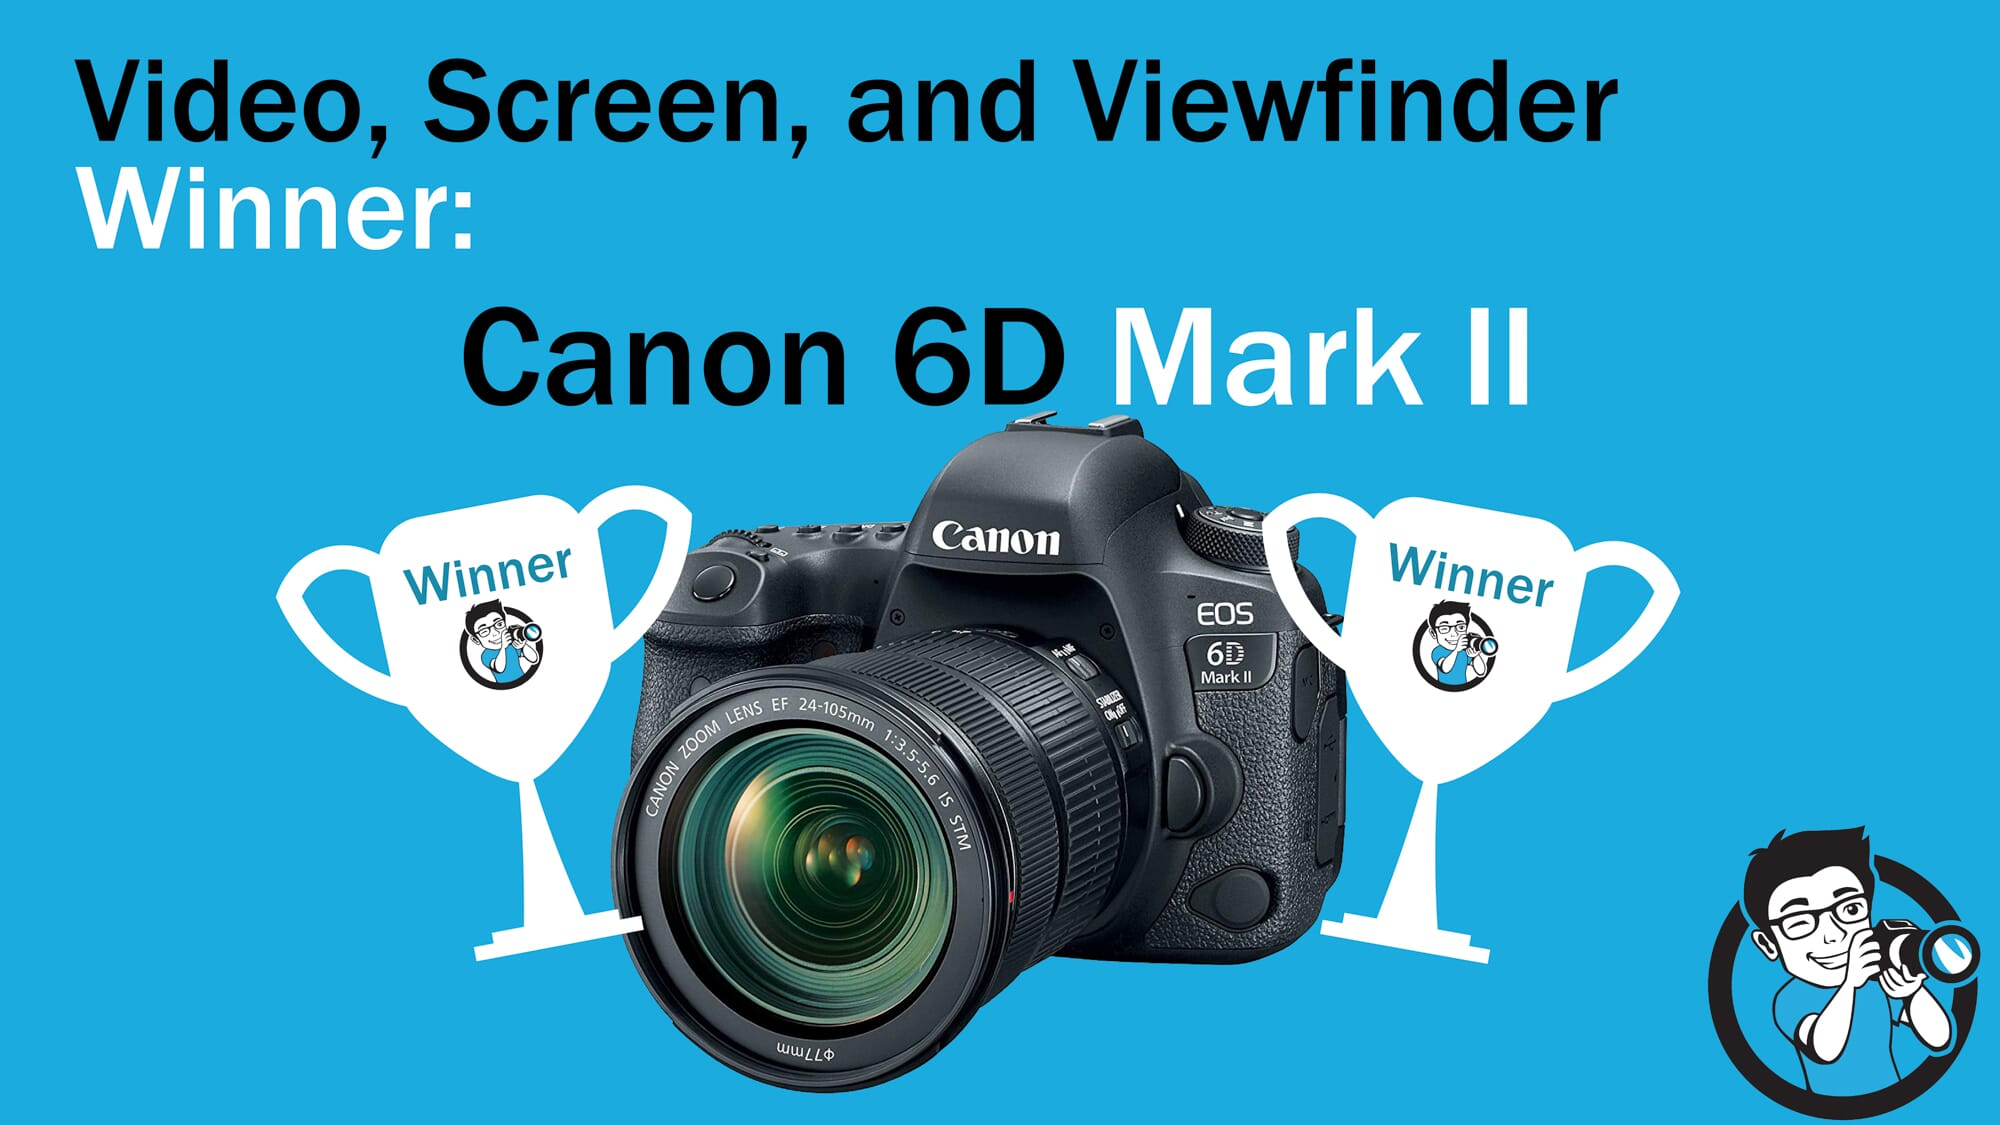 Canon 6D vs 7D Winner Video Screen Viewfinder